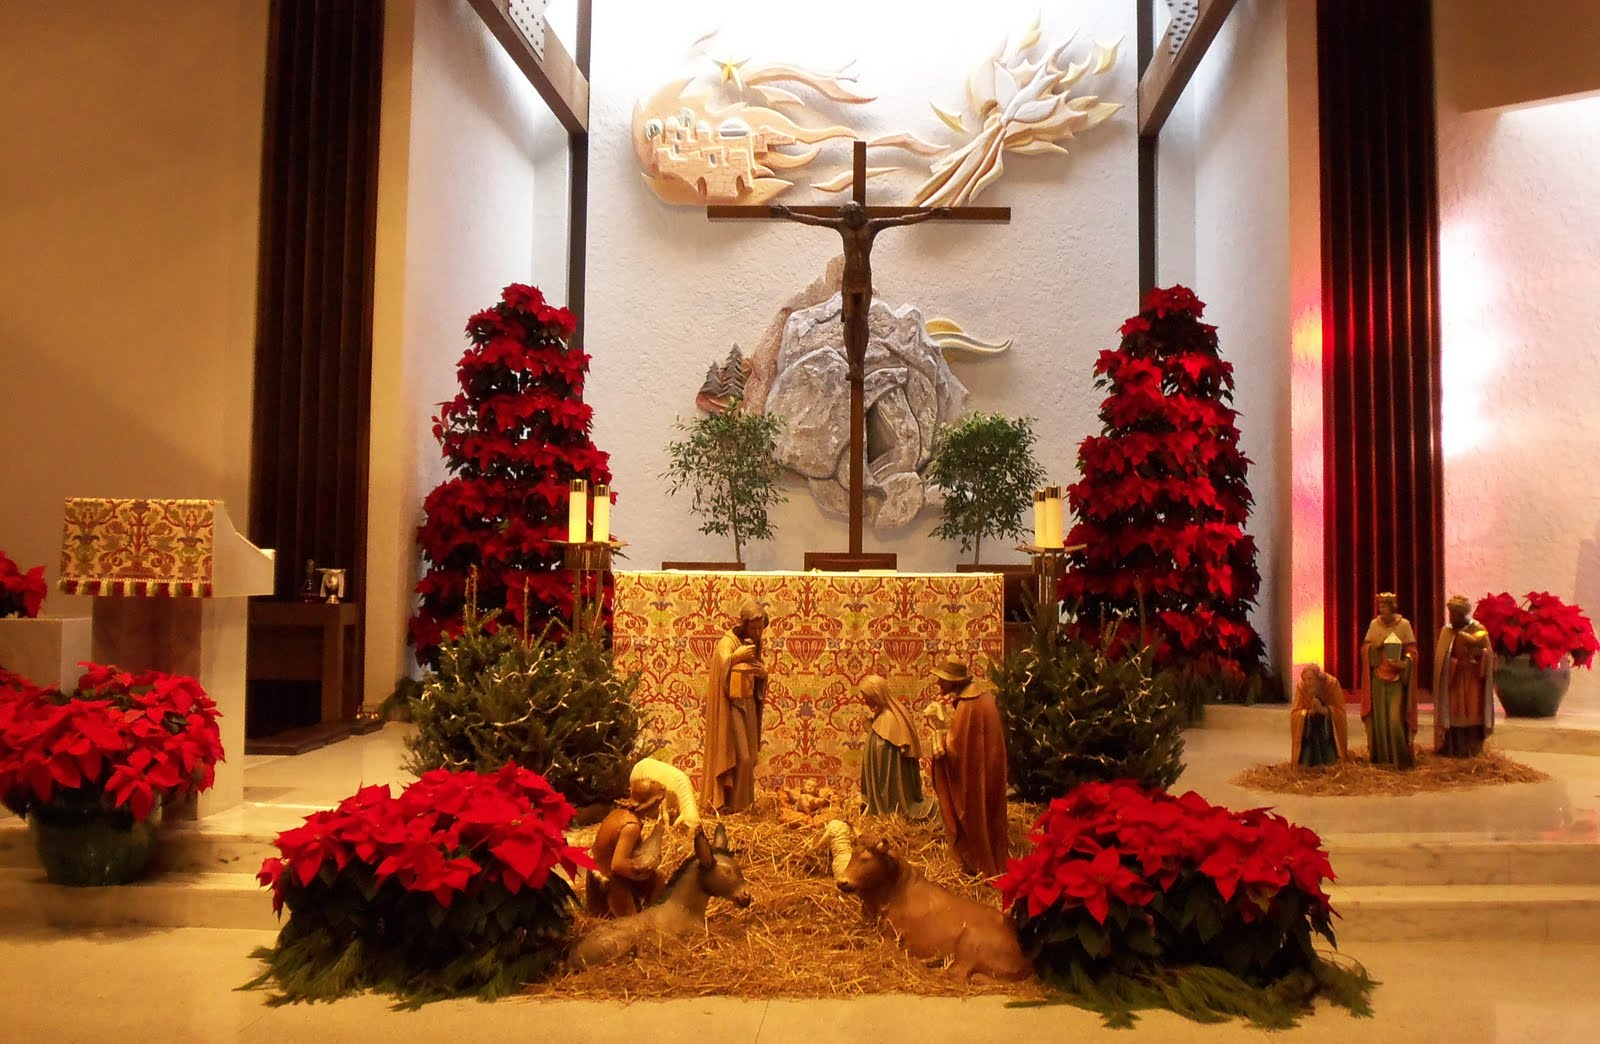 A debbie dabble christmas in our church